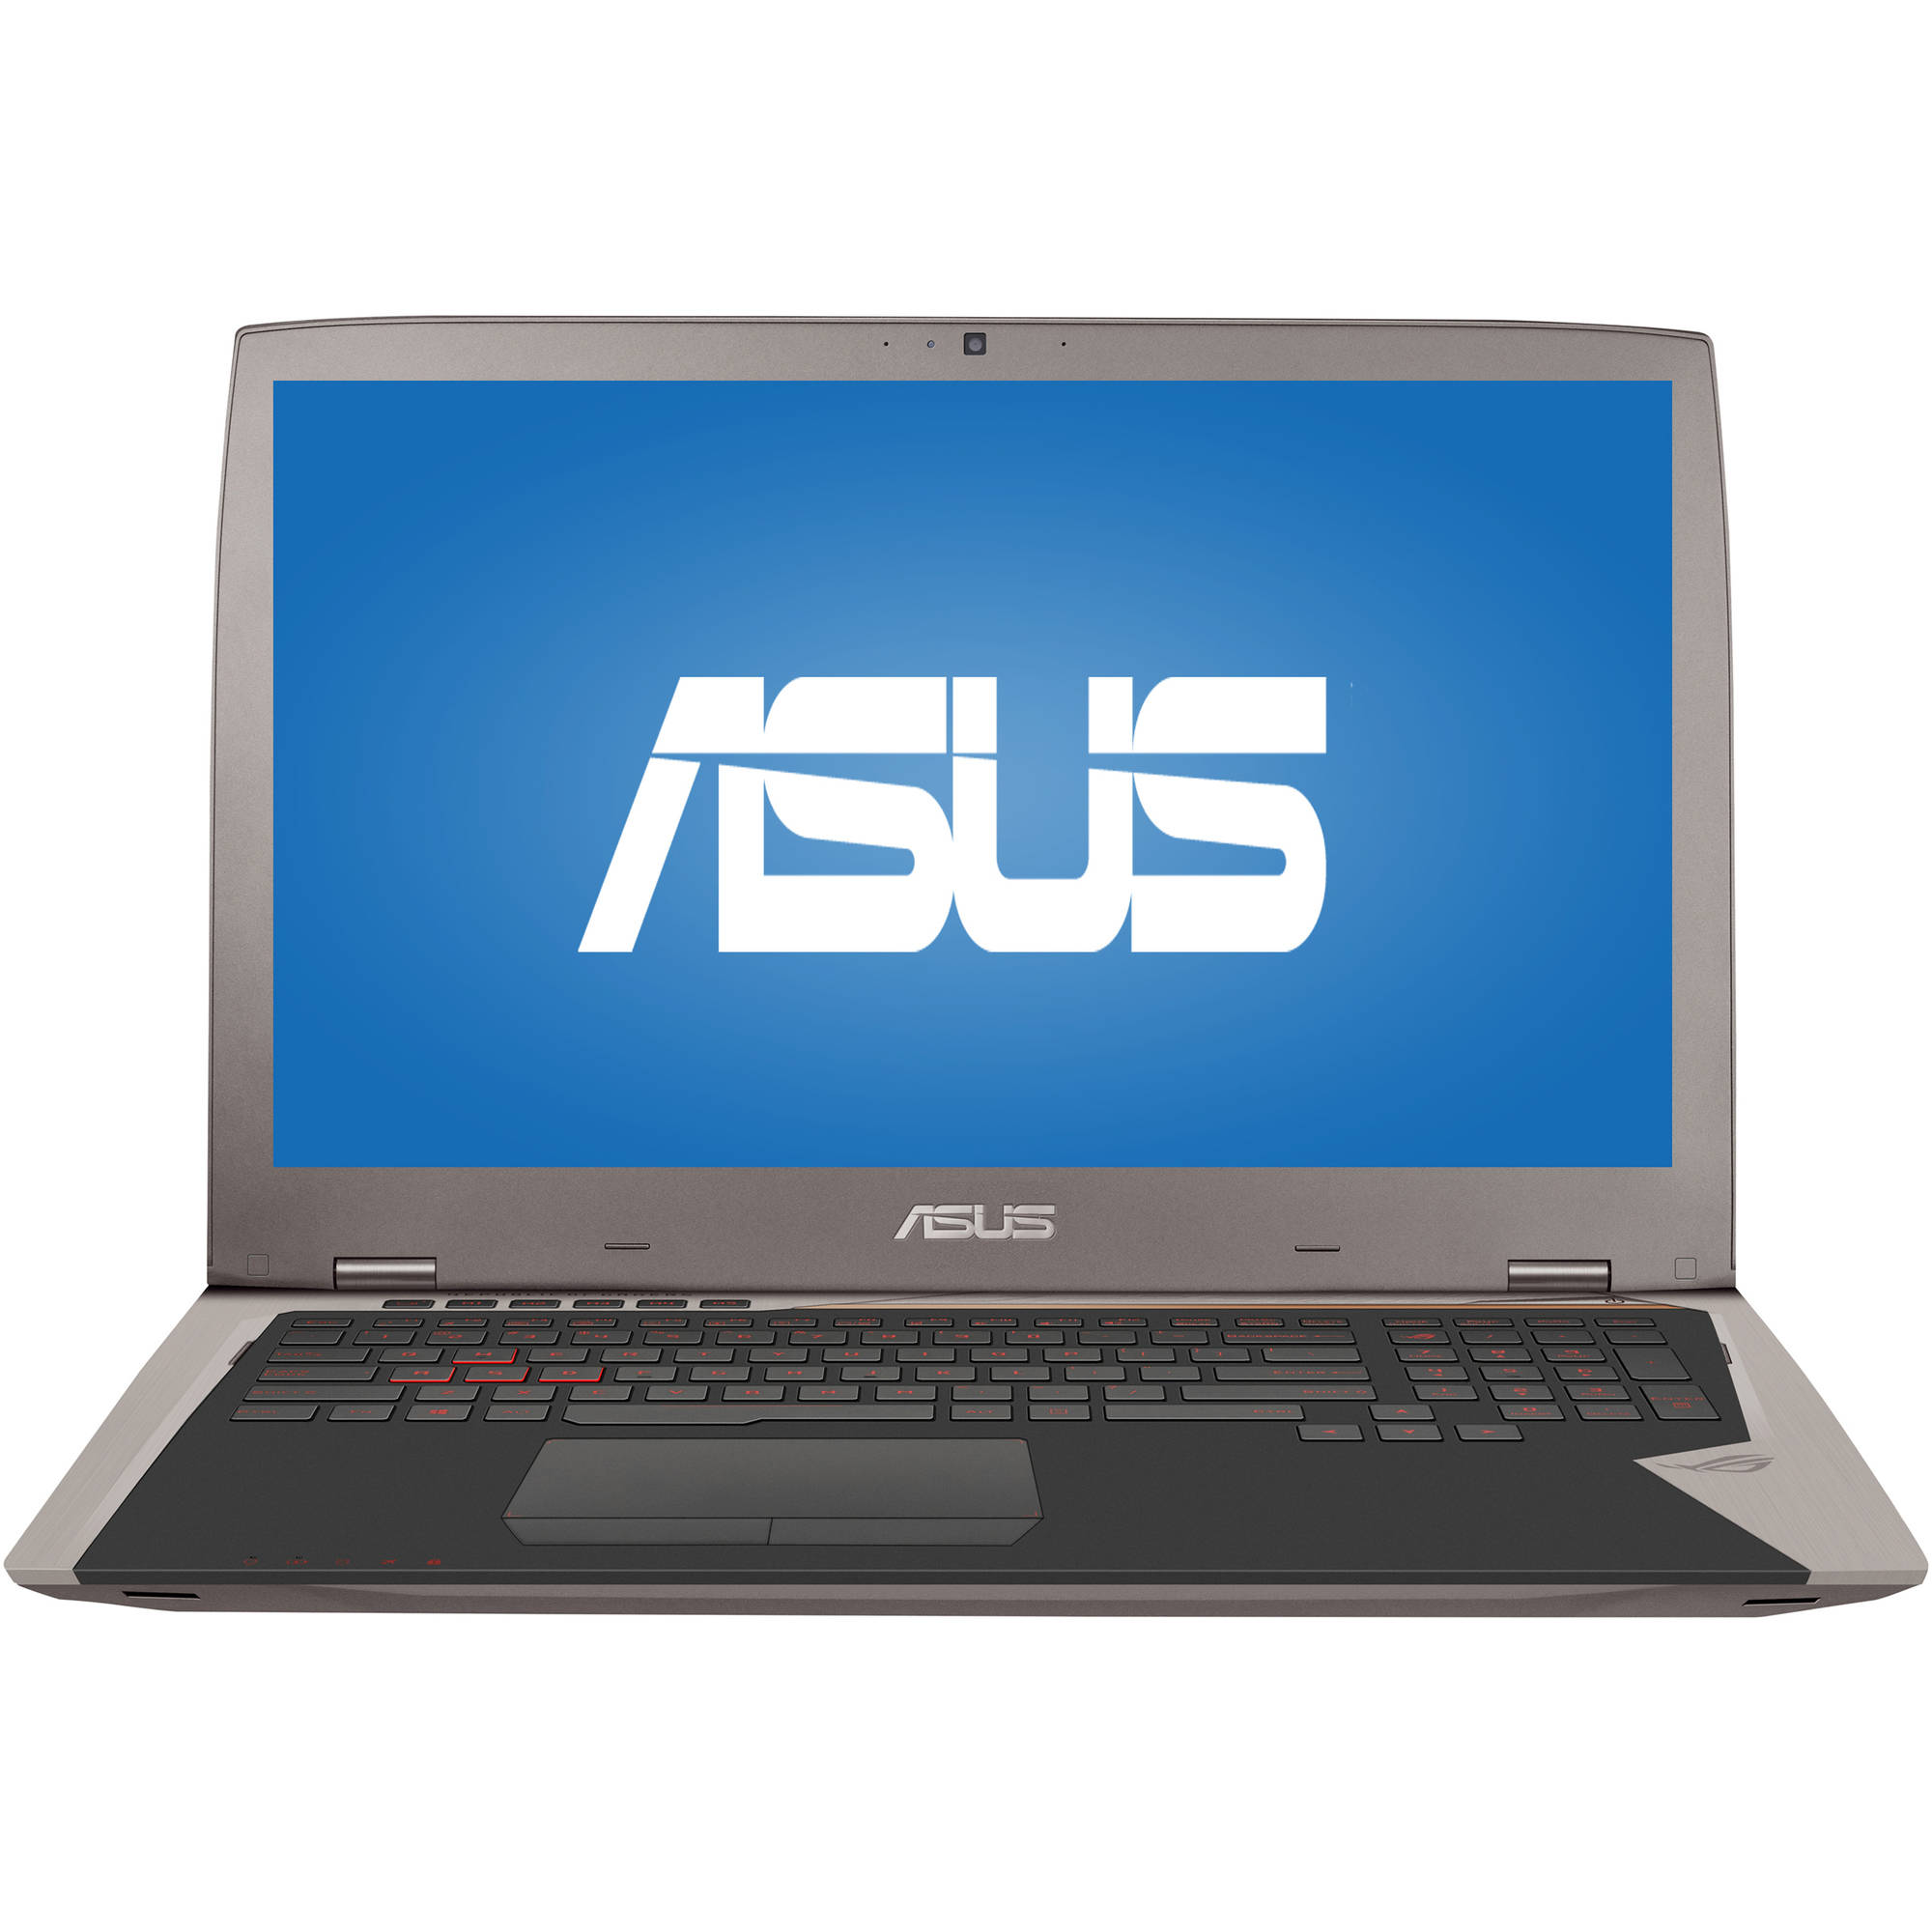 "ASUS Republic of Gamers 90NB0E61-M00120 17.3"" Gaming Laptop, Windows 10 Professional, Intel Core... by ASUS"